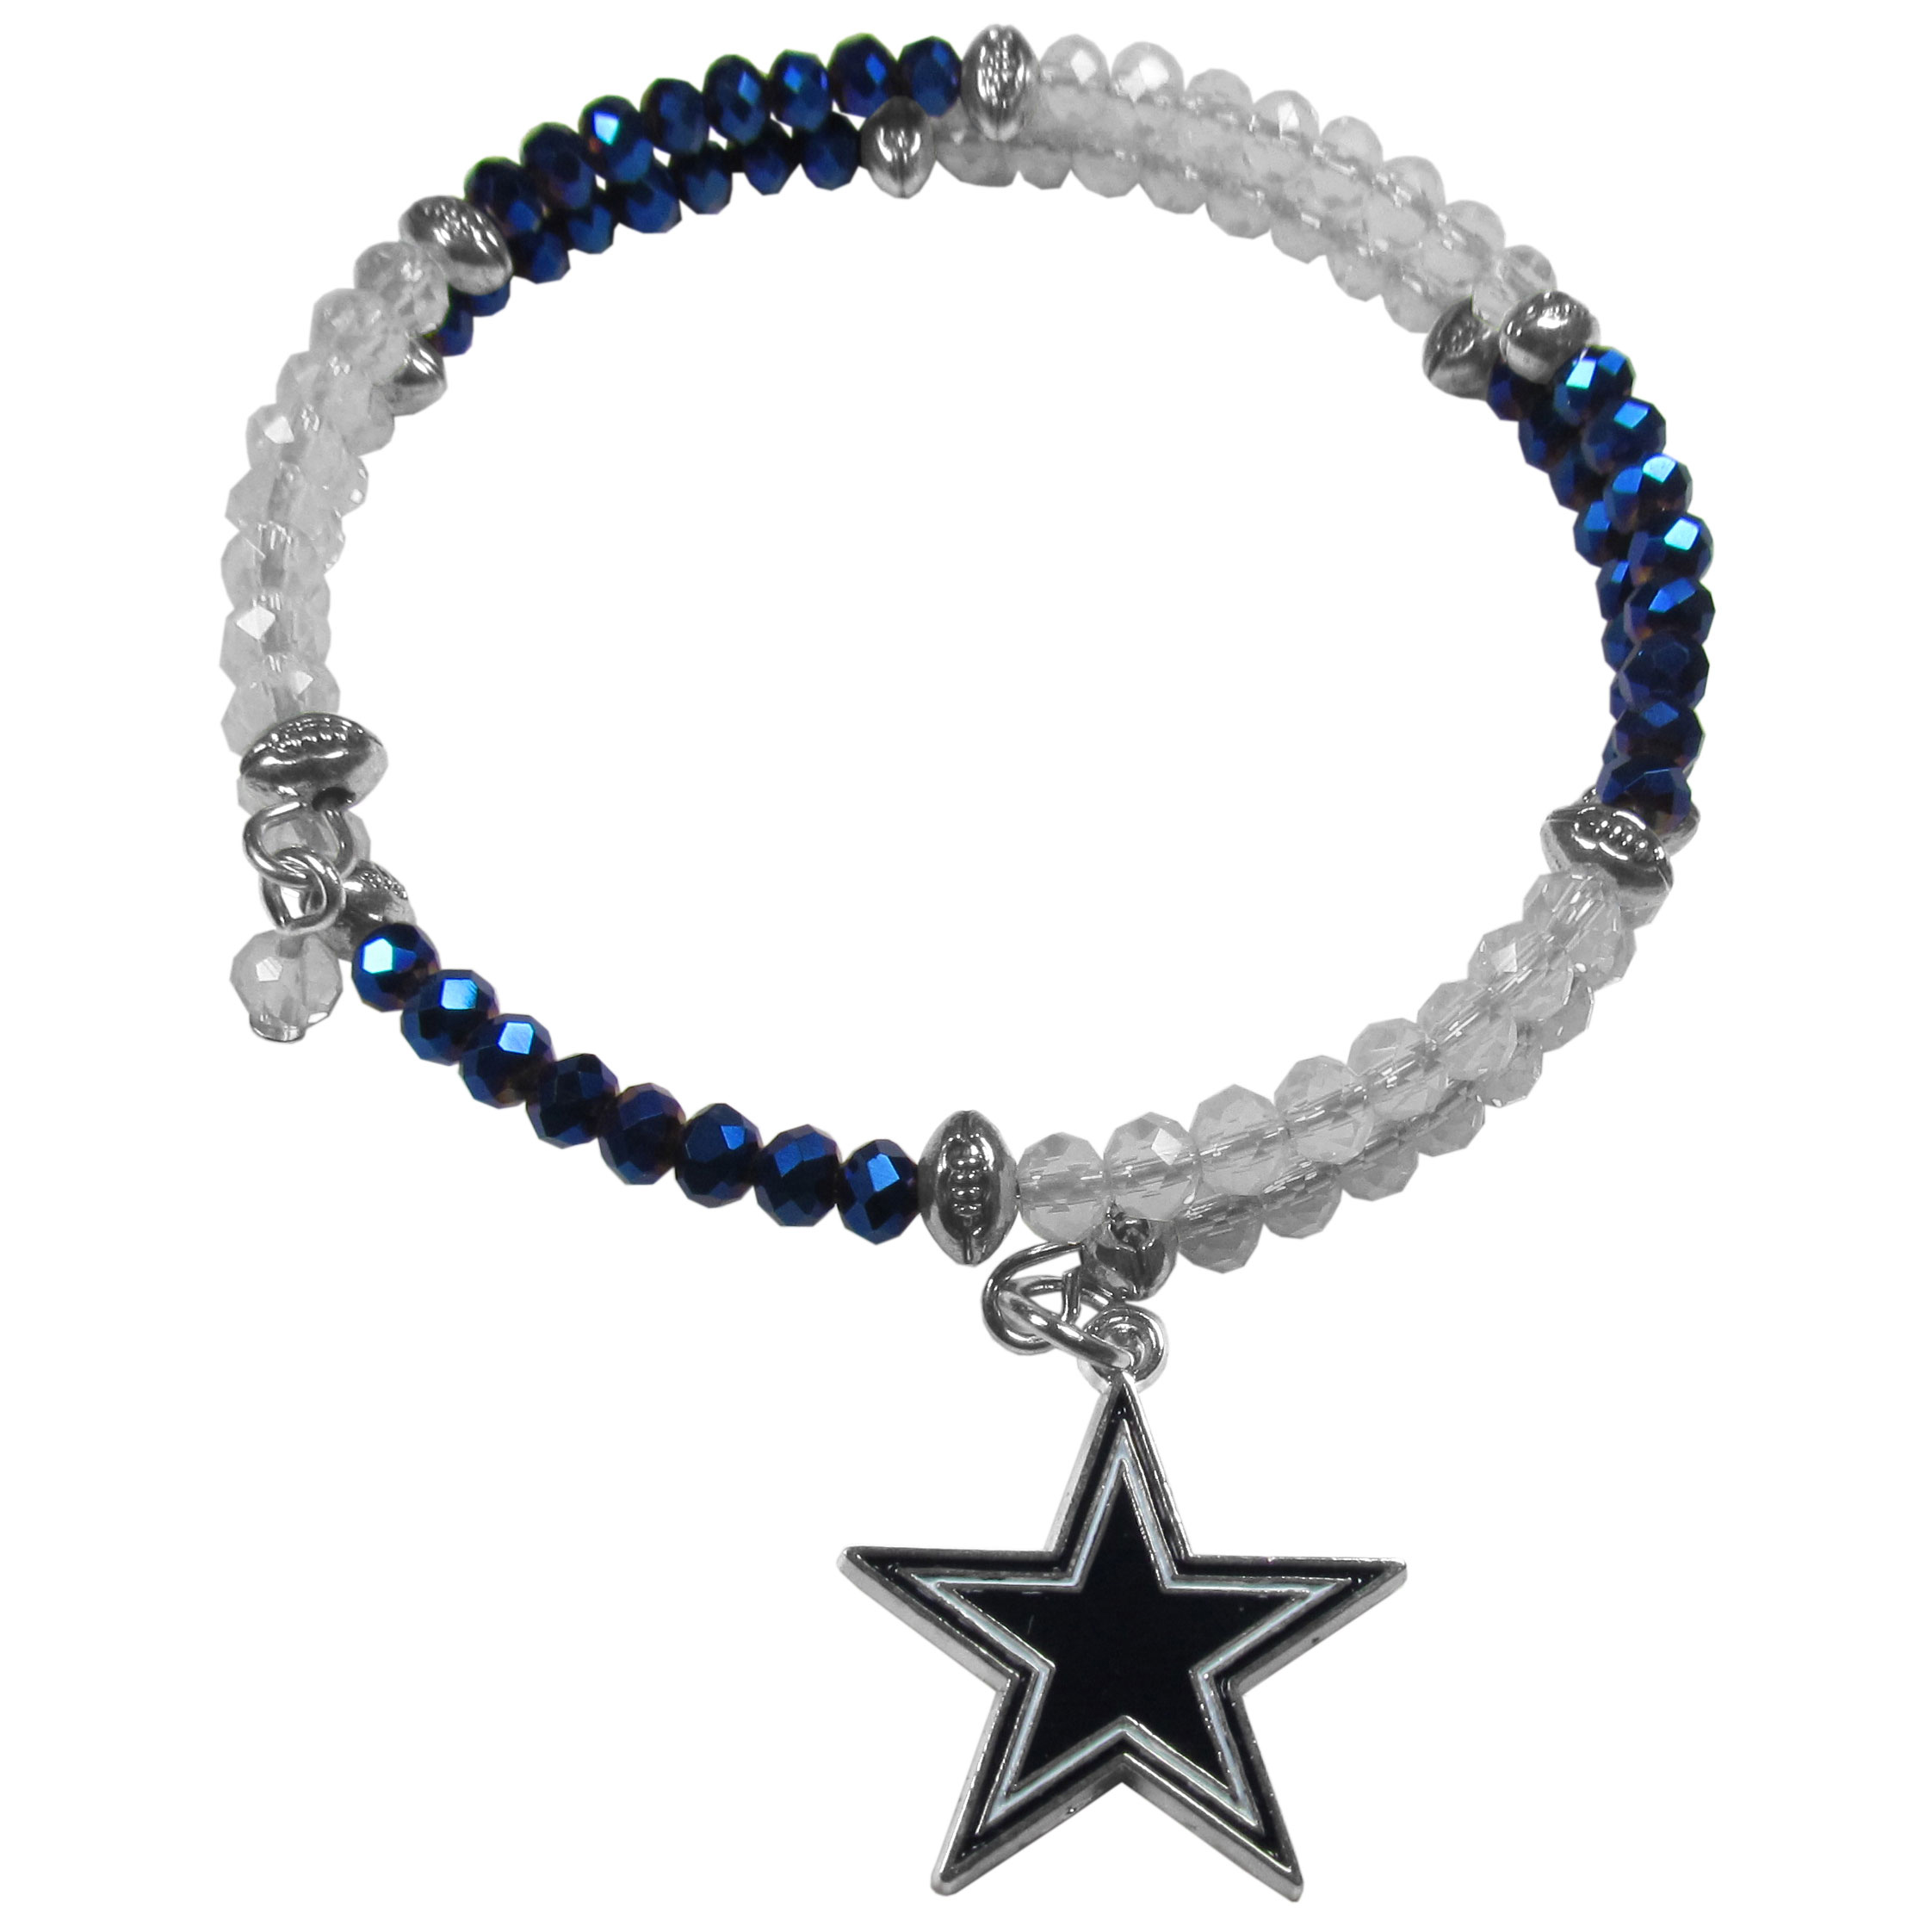 Dallas Cowboys Crystal Memory Wire Bracelet - Our Dallas Cowboys memory wire crystal bracelet is trendy way to show off your love of the game. The double wrap bracelet is completely covered in 4 mm crystals that are broken up with adorable football beads creating a designer look with a sporty twist. The bracelet features a fully cast, metal team charm that has expertly enameled team colors. This fashion jewelry piece is a must-have for the die-hard fan that chic look that can dress up any outfit.